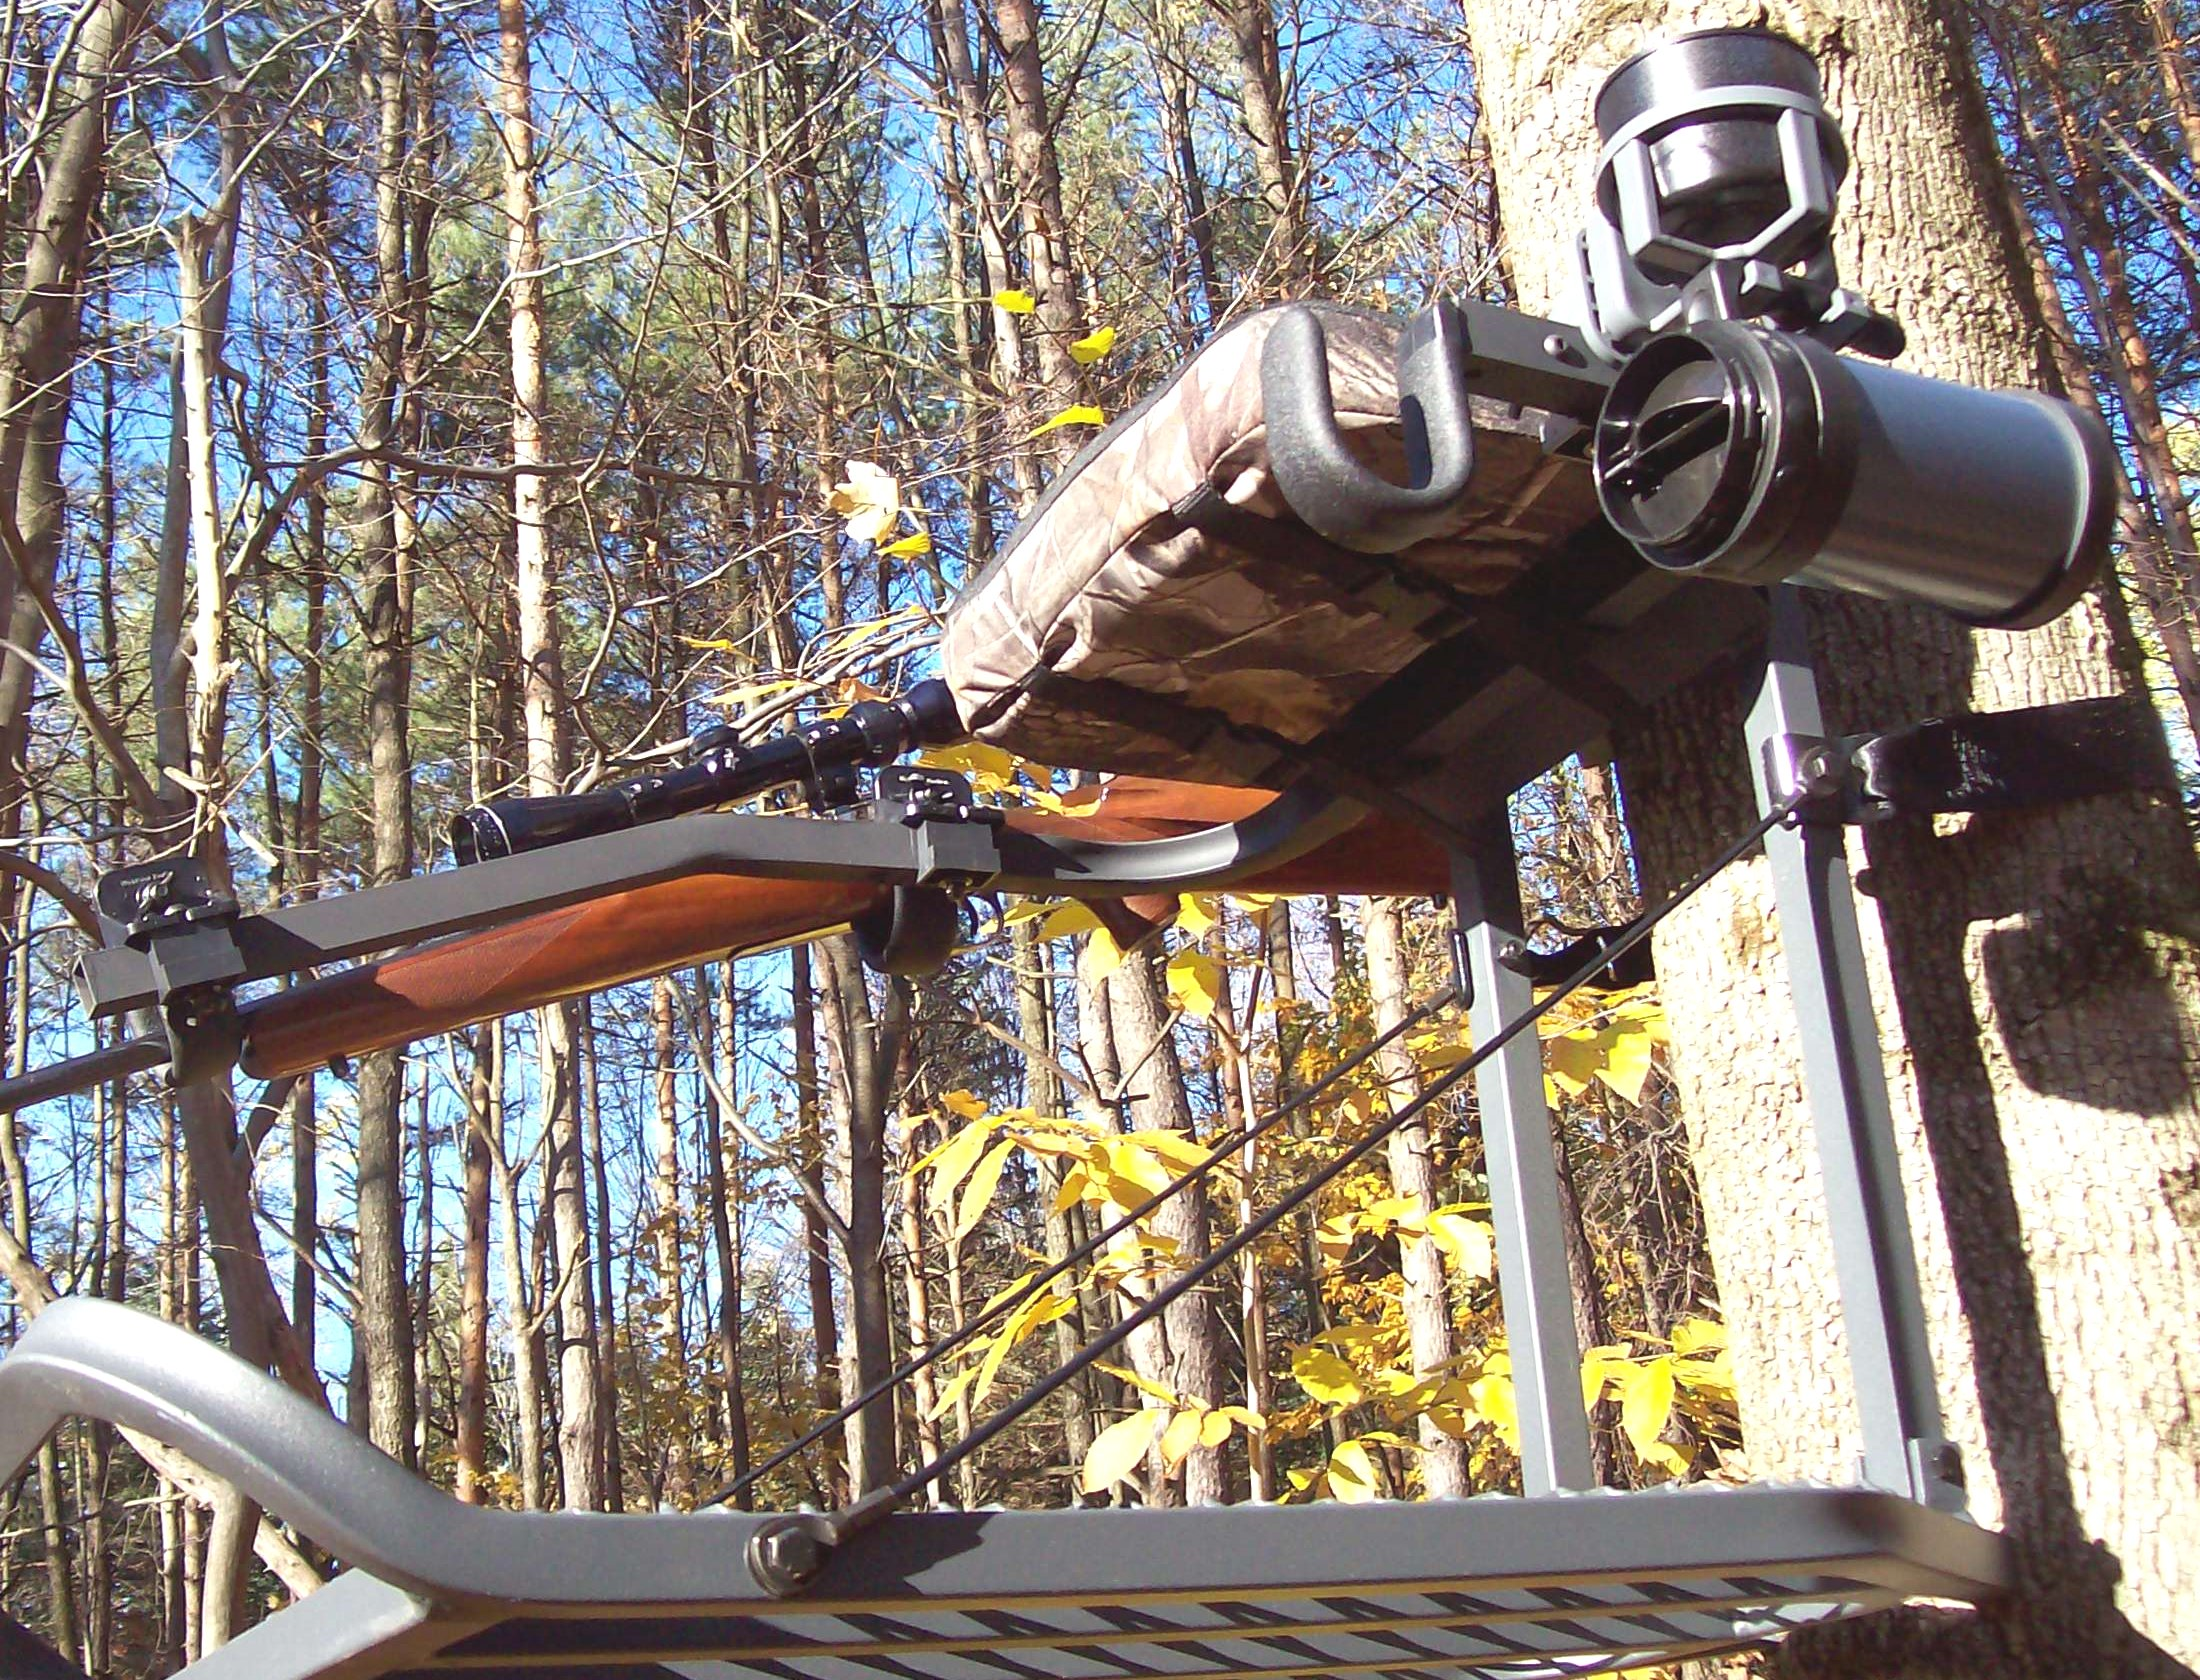 Portable tree stand mounted on a tree in the woods for deer hunting